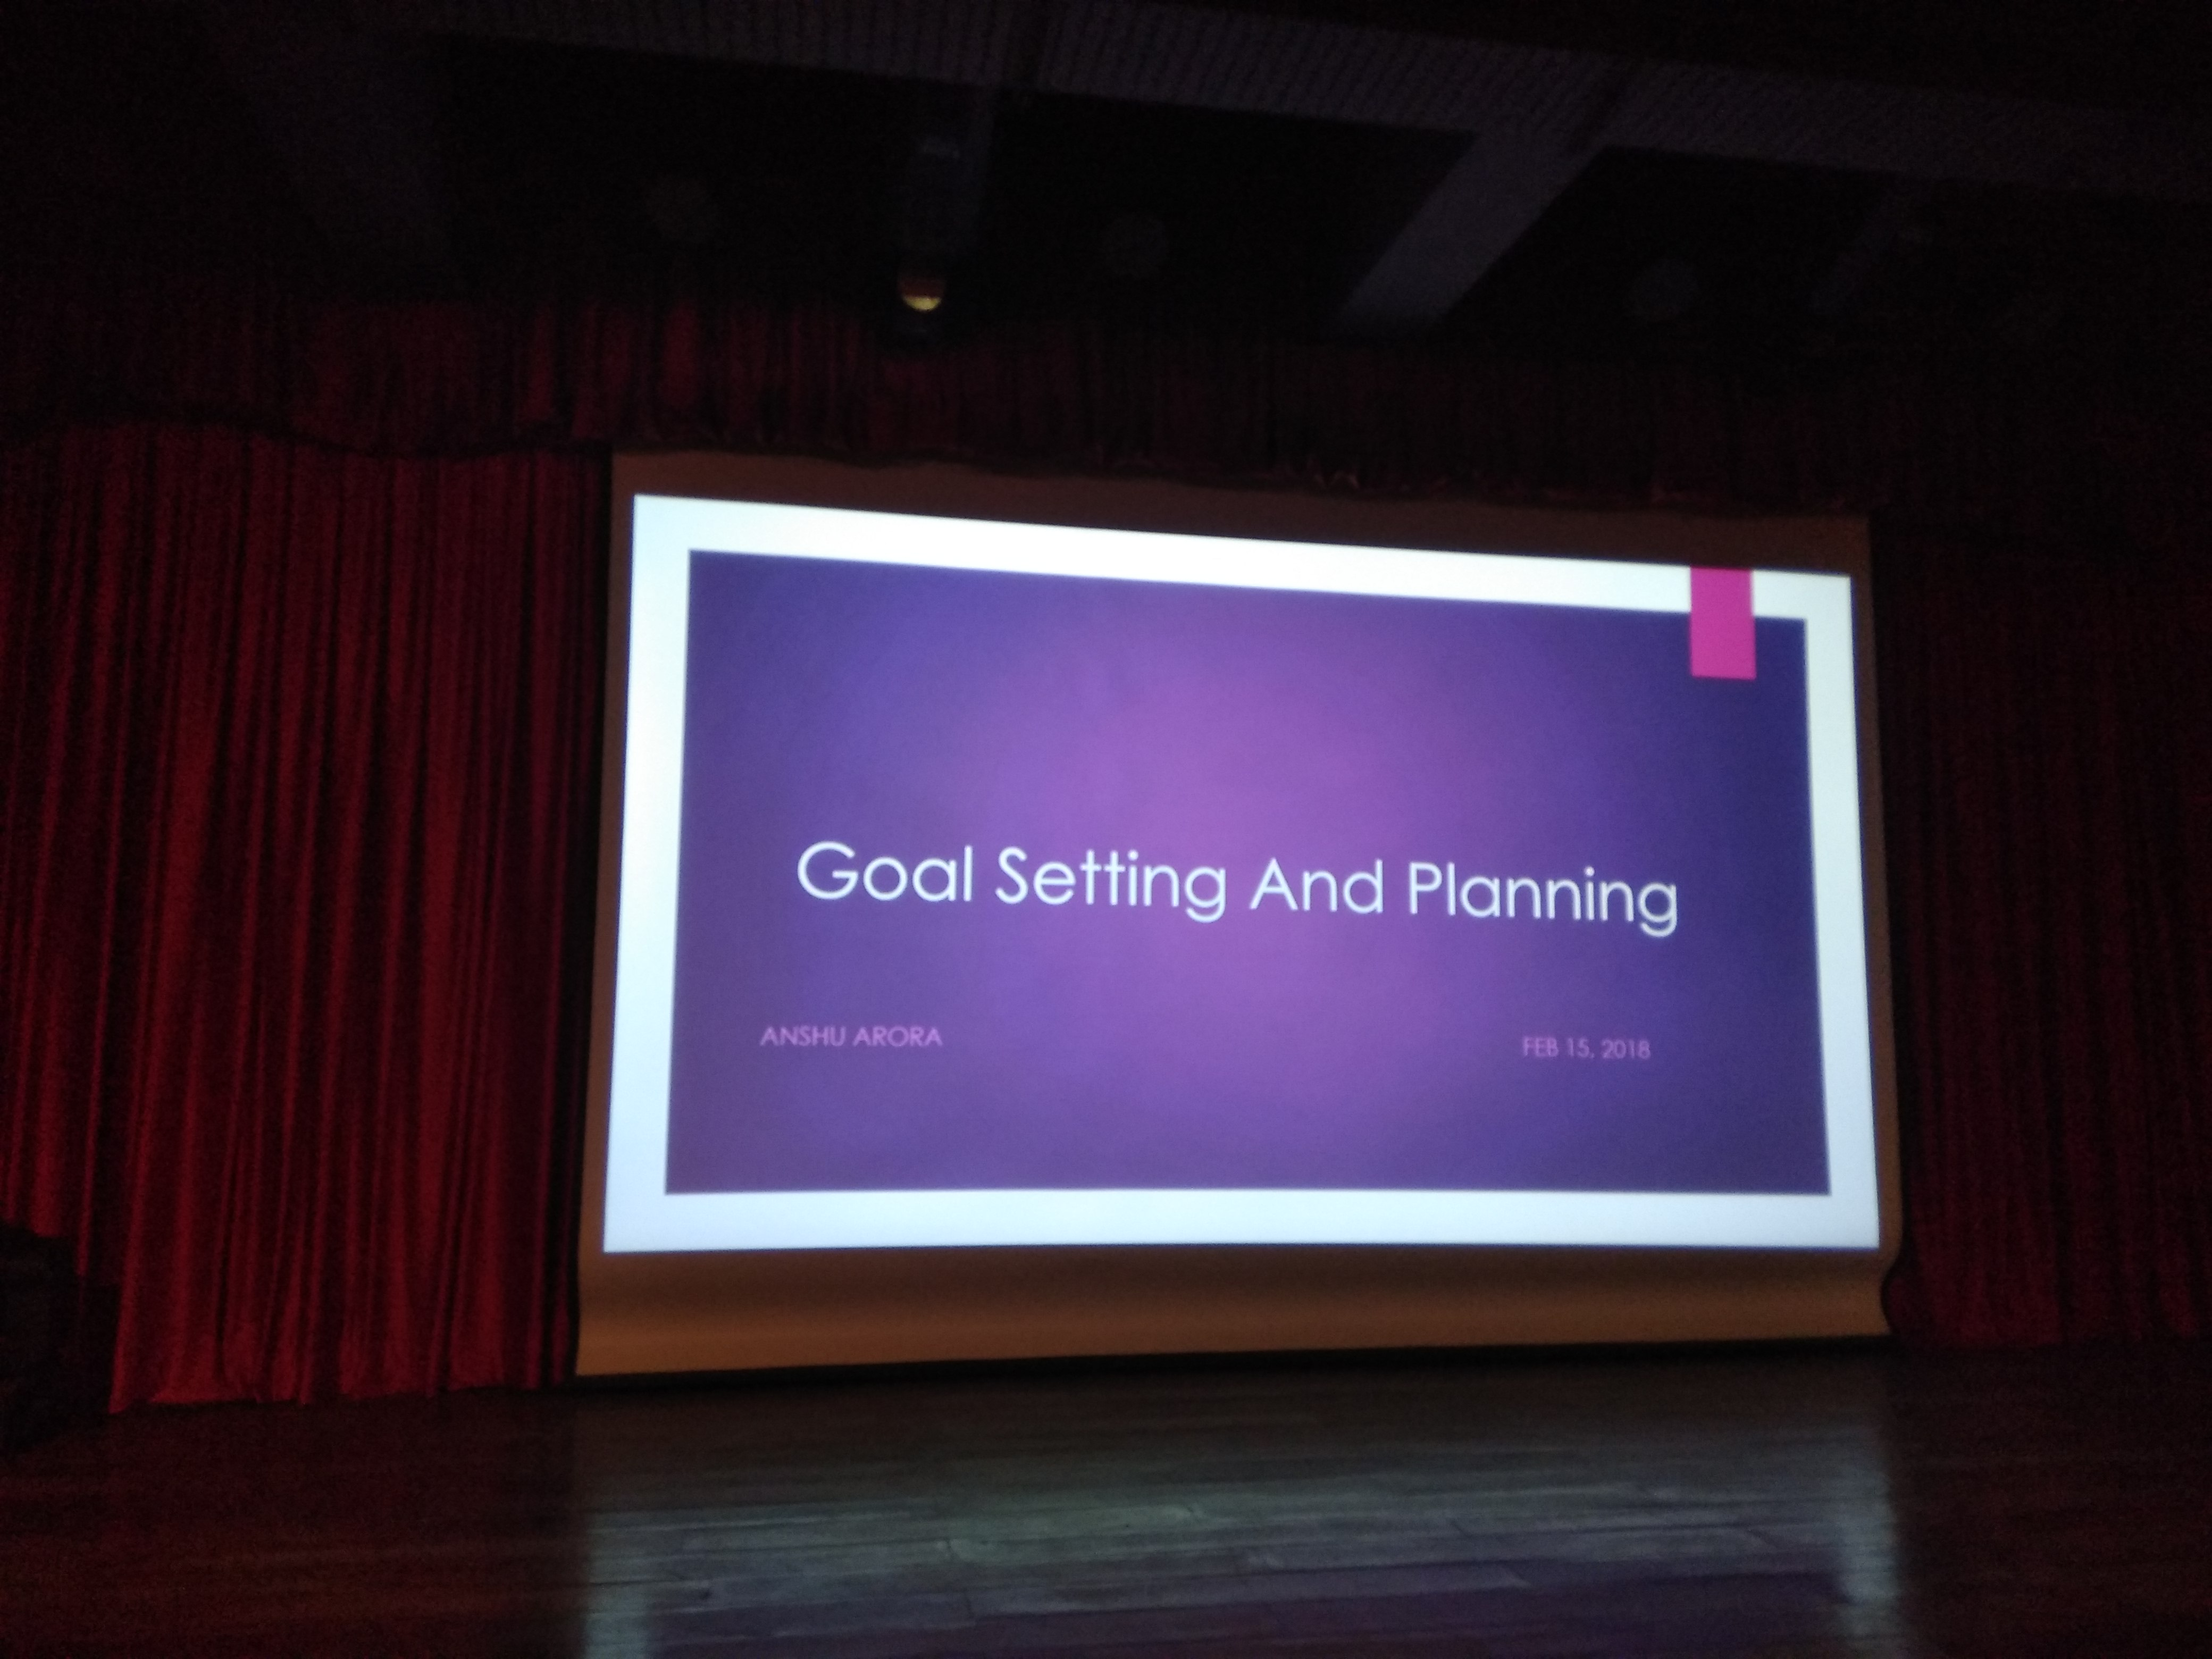 Session on Goal Setting & Planning